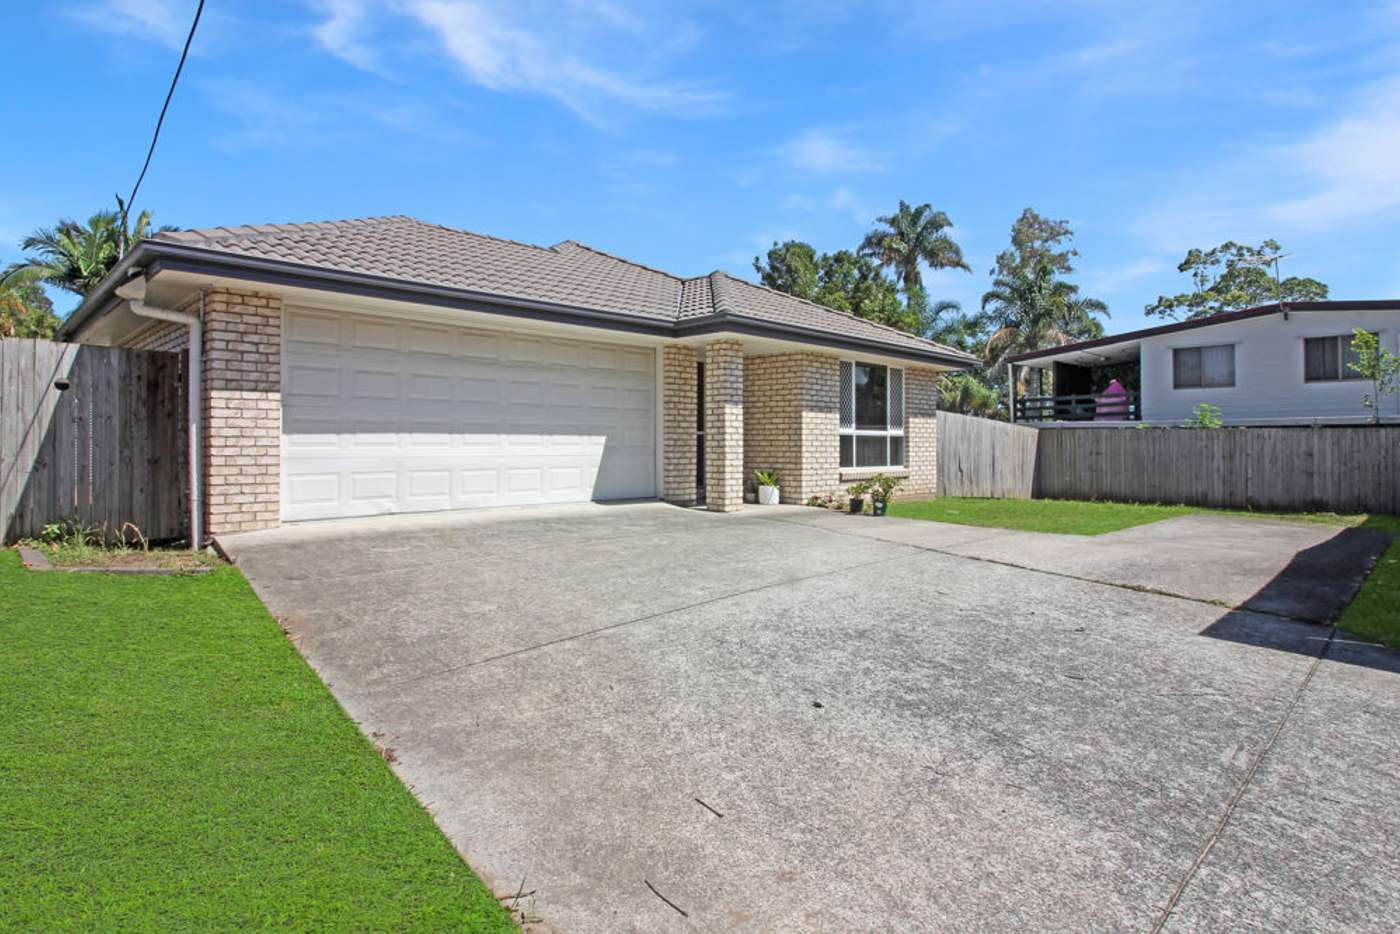 Main view of Homely house listing, 2/17 Lynelle Street, Marsden QLD 4132